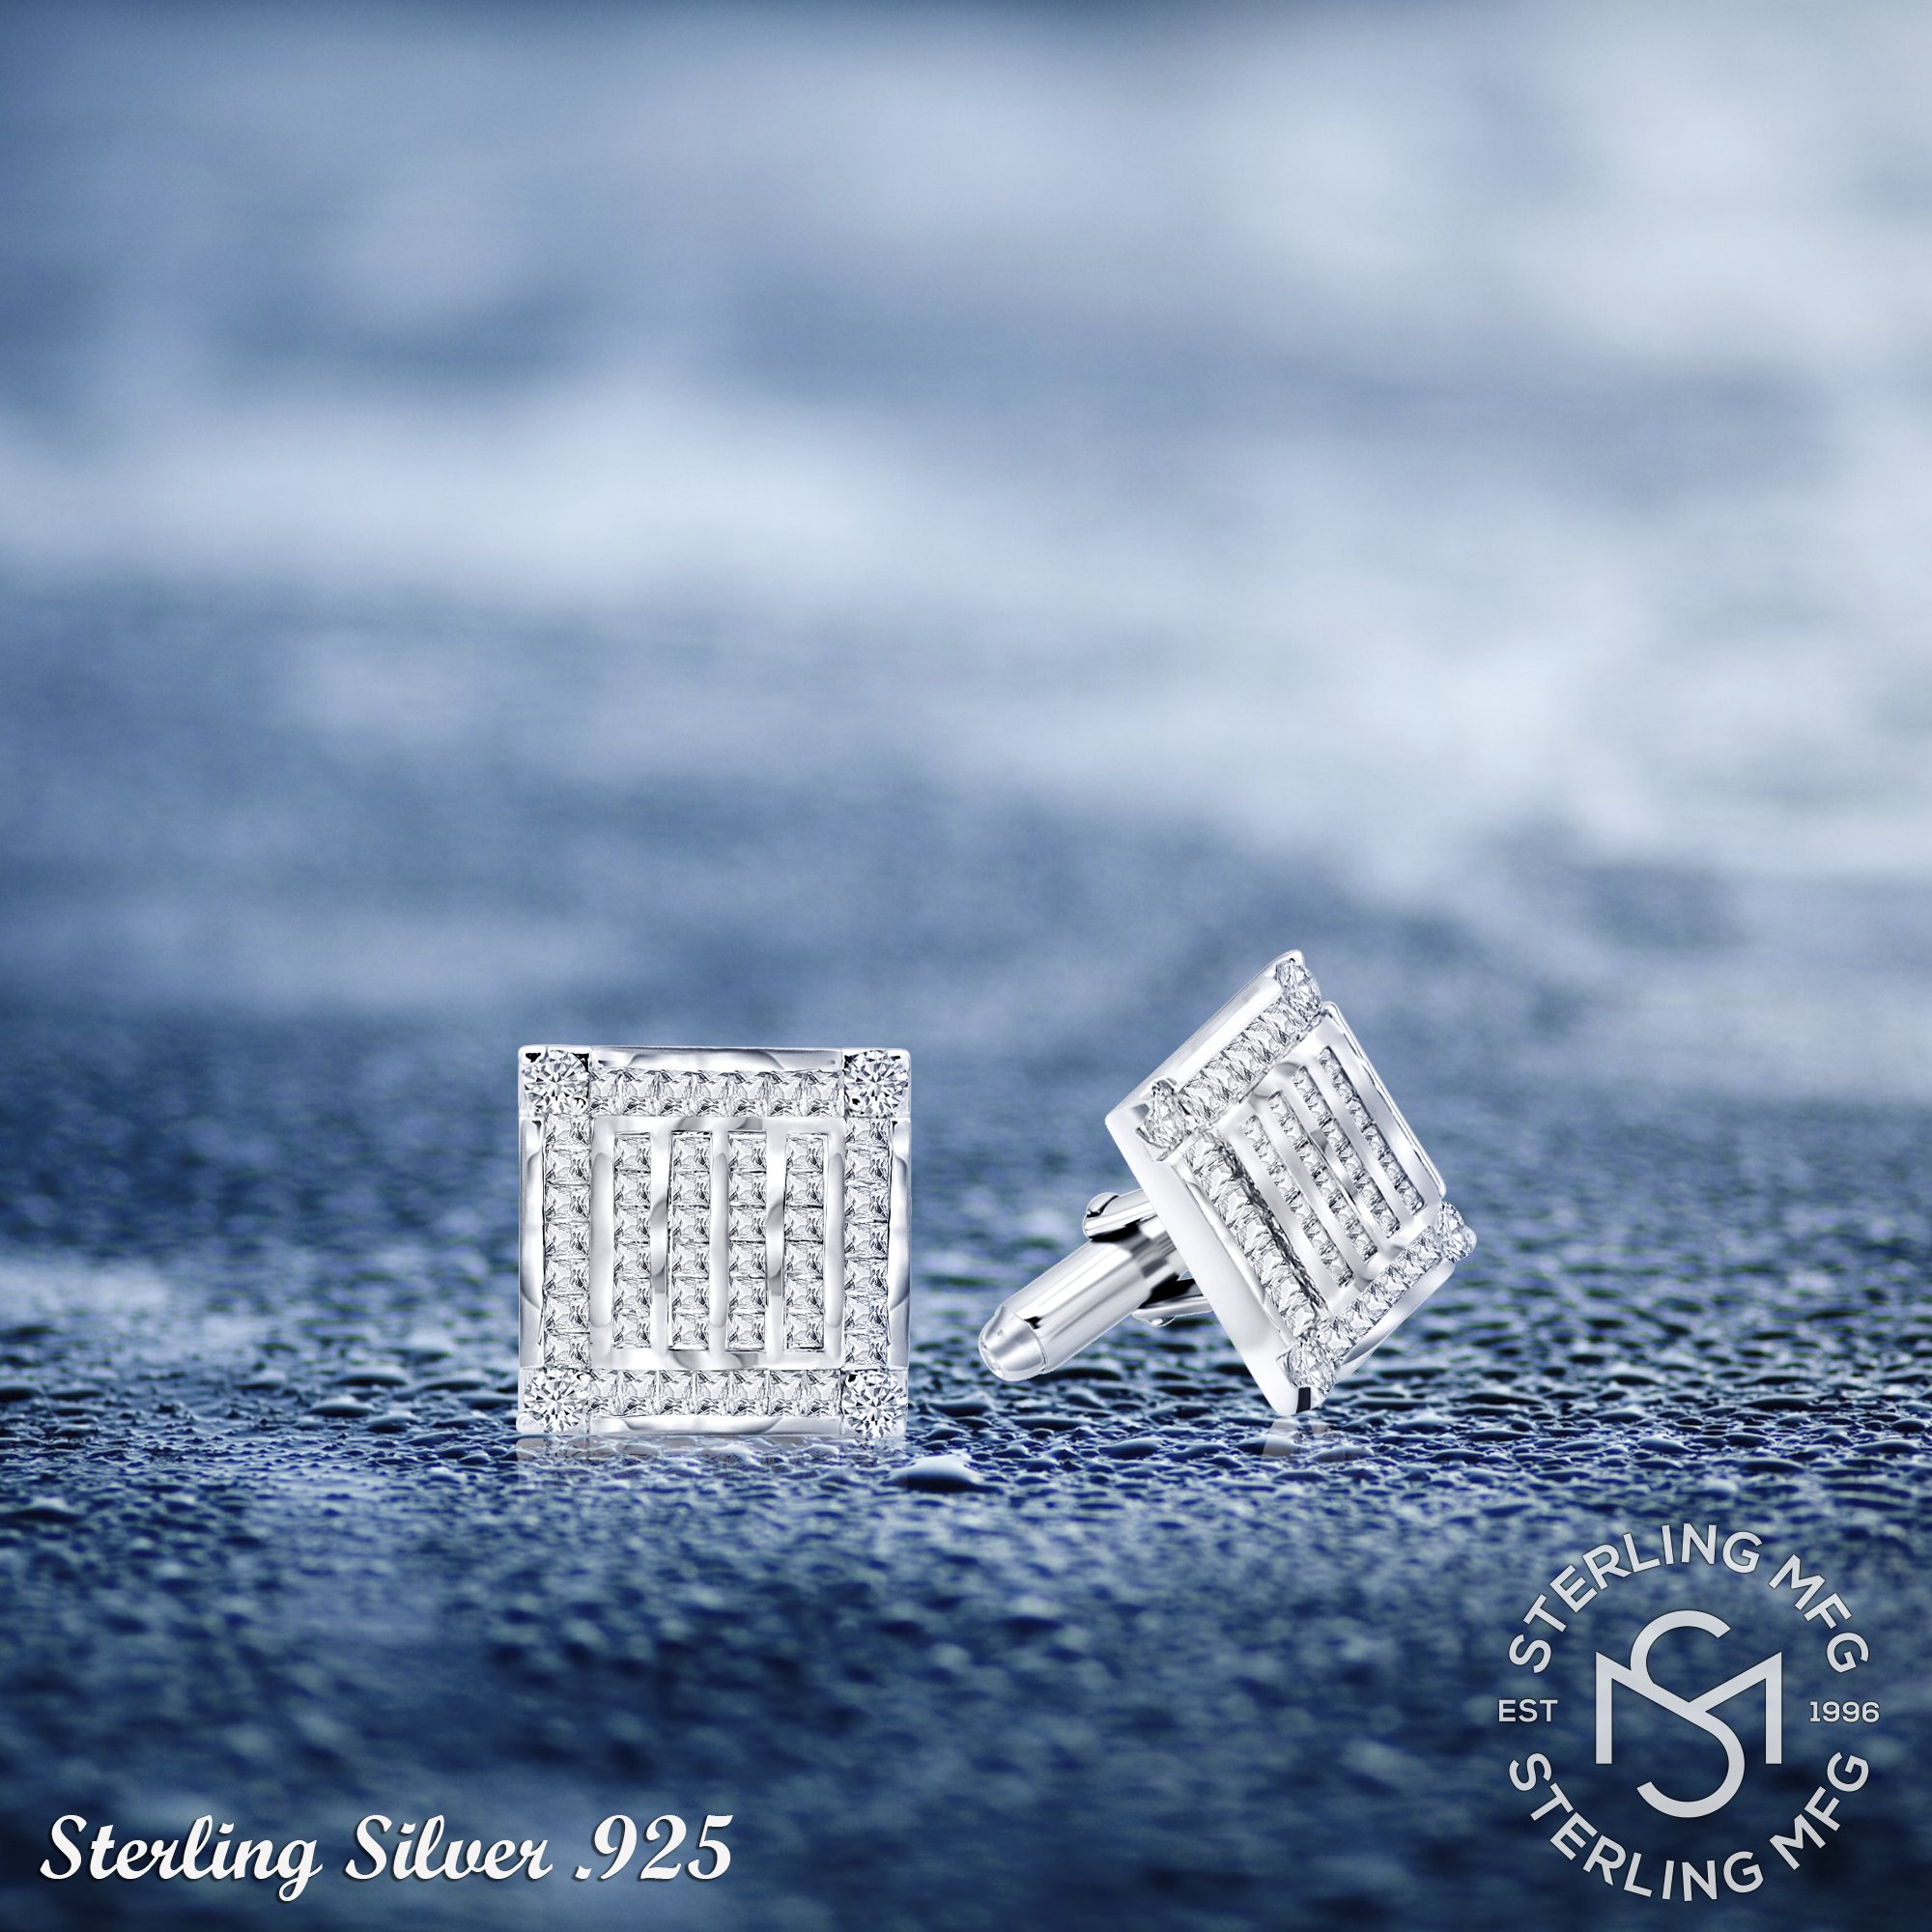 Men's Sterling Silver .925 Square Cufflinks with Channel-Set Baguette and Princess-Cut Cubic Zirconia Stones, Platinum Plated. 18.5 mm. By Sterling Manufacturers by Sterling Manufacturers (Image #6)